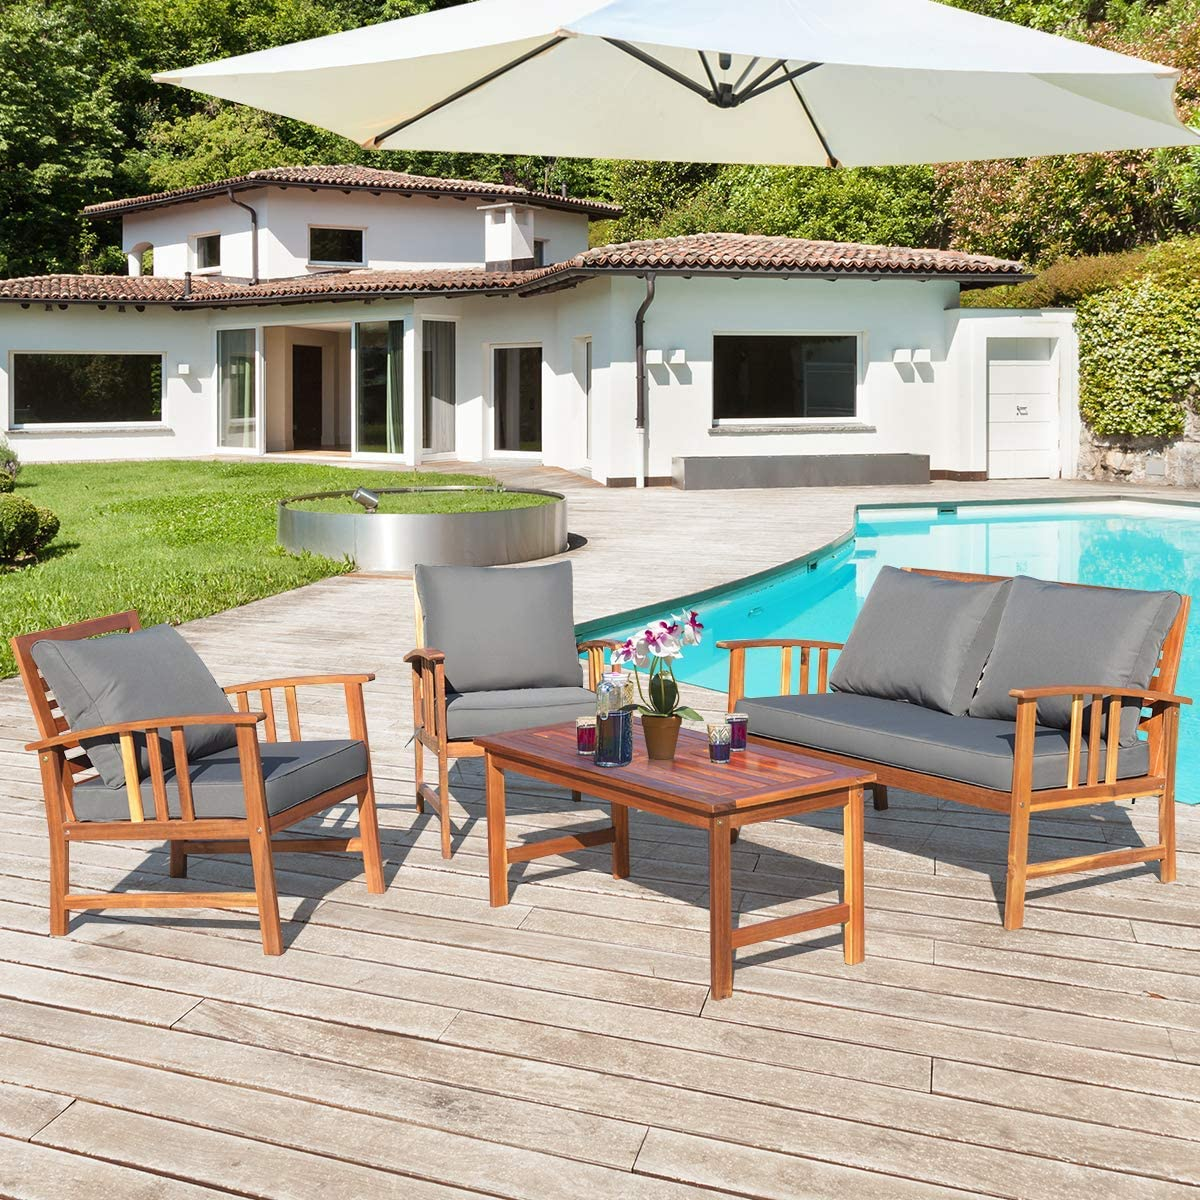 Amazon Com Tangkula 4 Pcs Wood Patio Furniture Set Outdoor Seating Chat Set With Gray Cushions Back Pillow Outdoor Conversation Set With Coffee Table Ideal For Garden Backyard Poolside Garden Outdoor